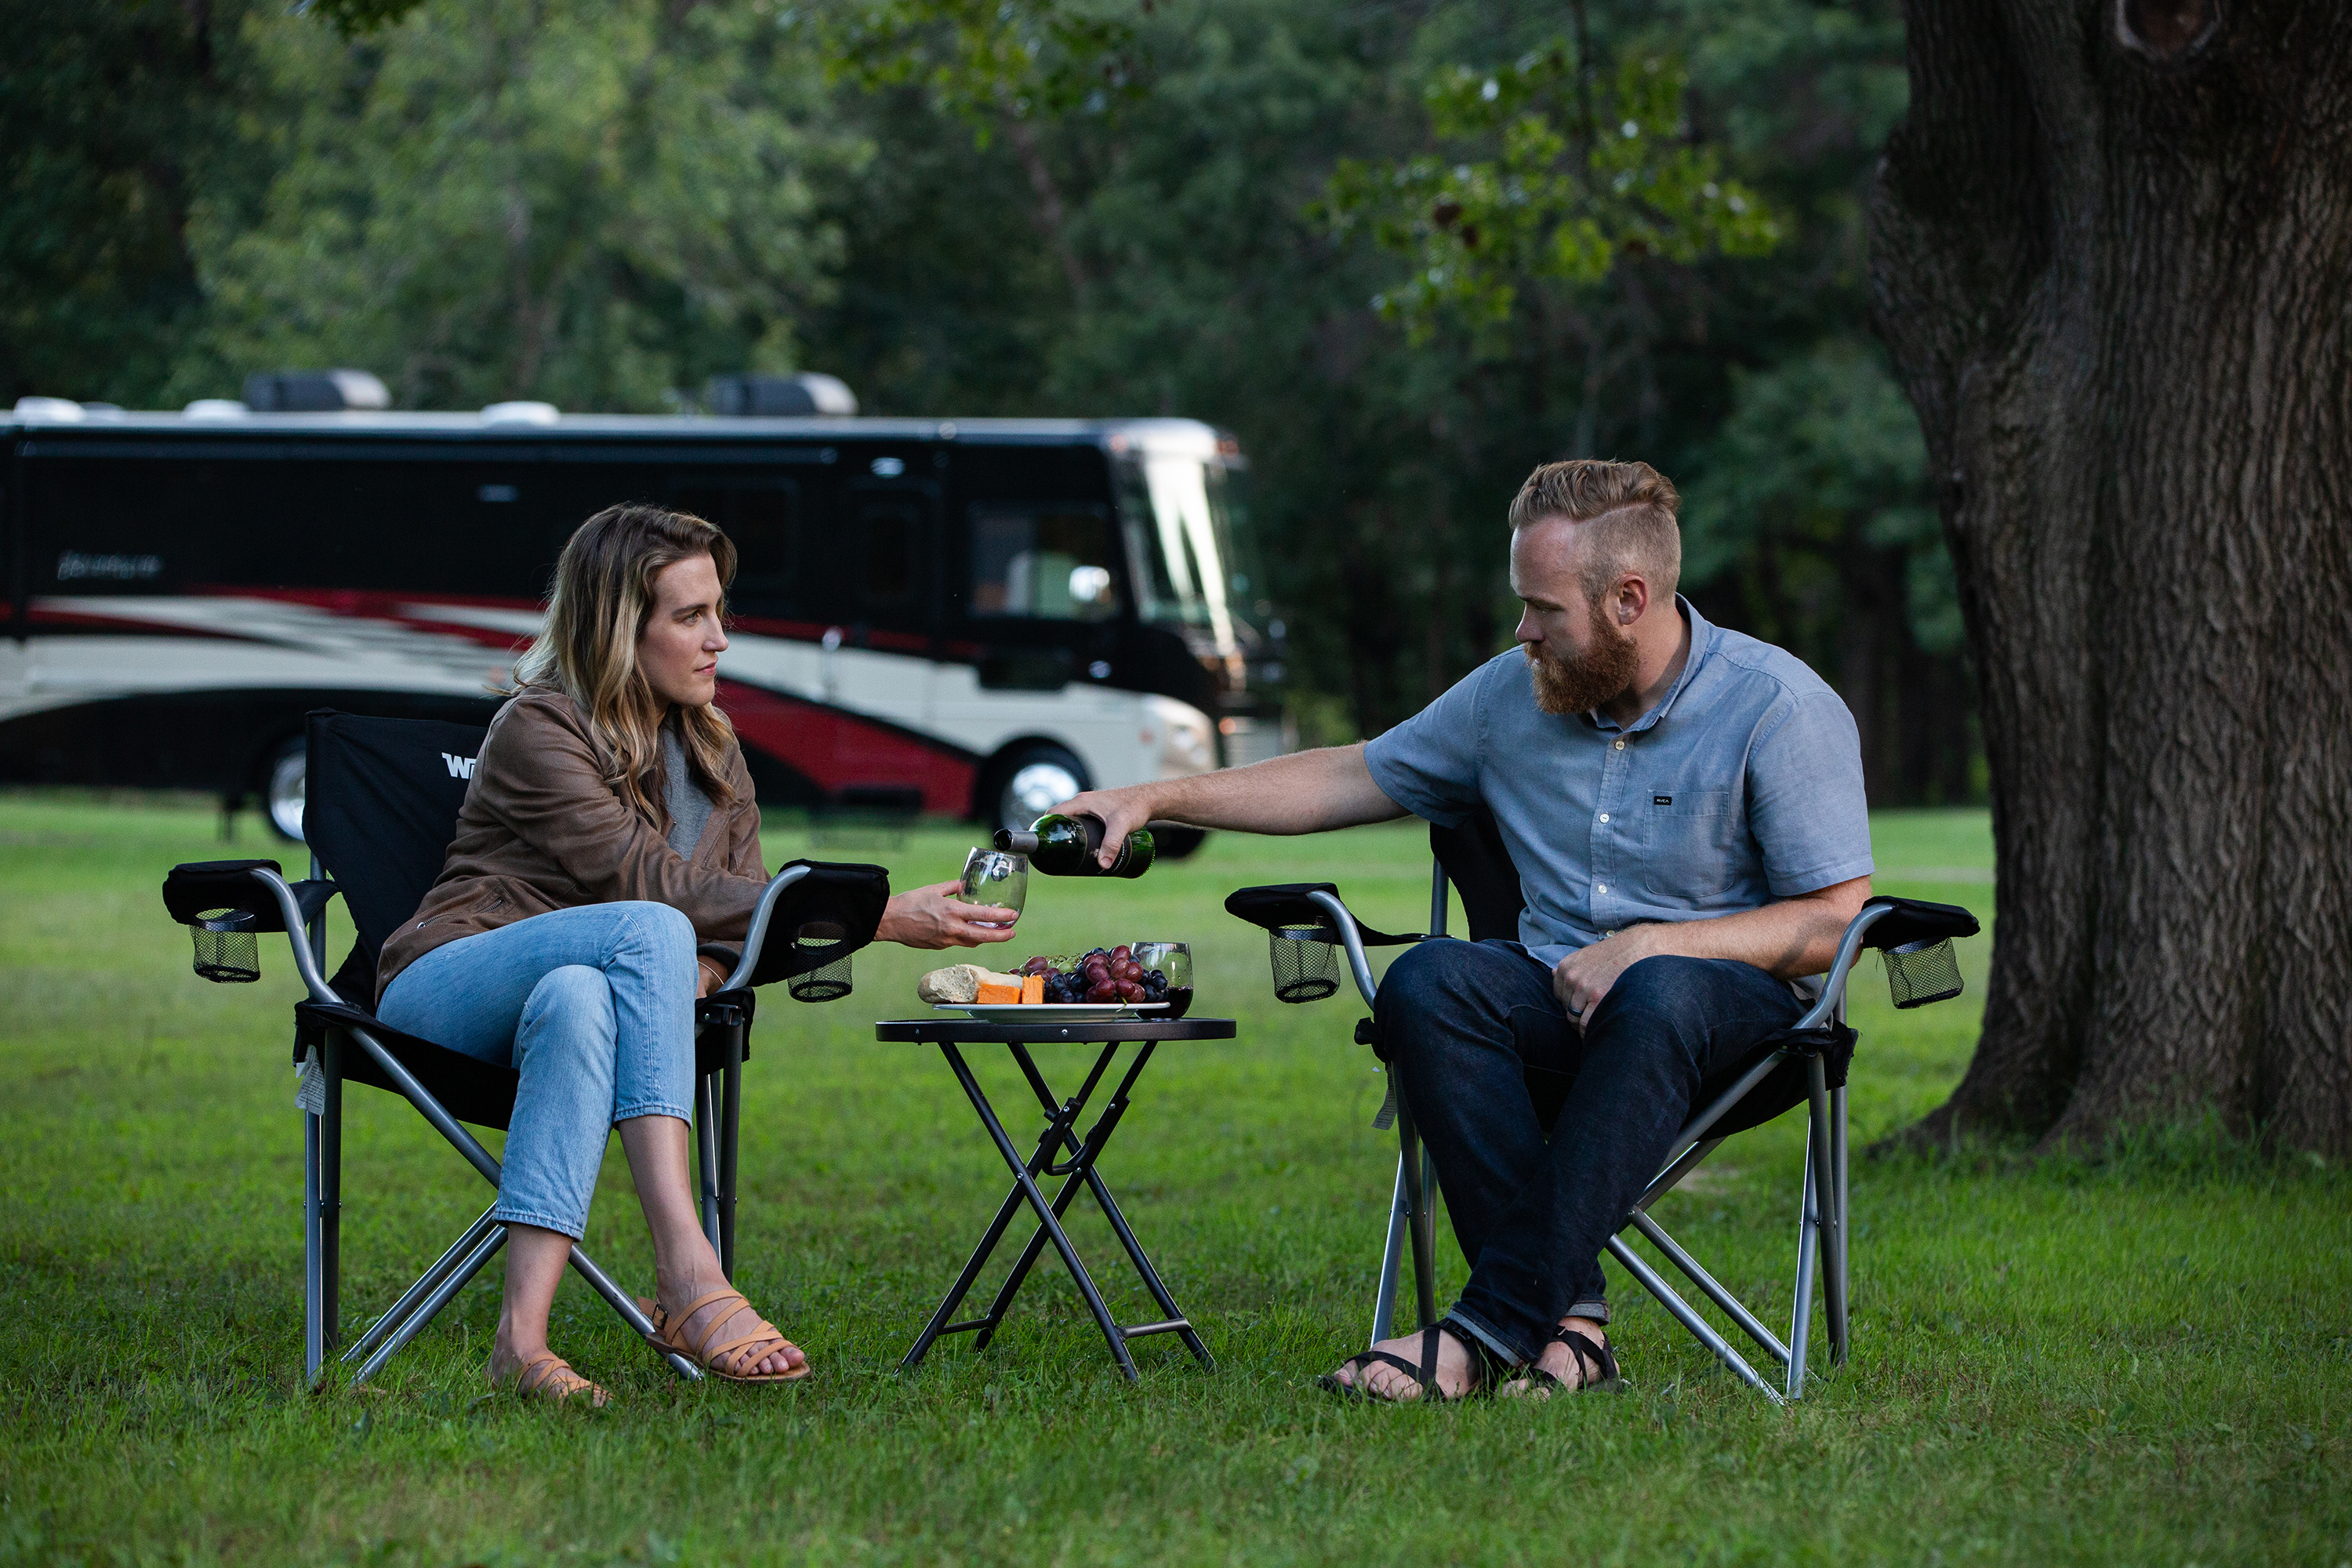 Best-Sized Motorhomes for Your Lifestyle